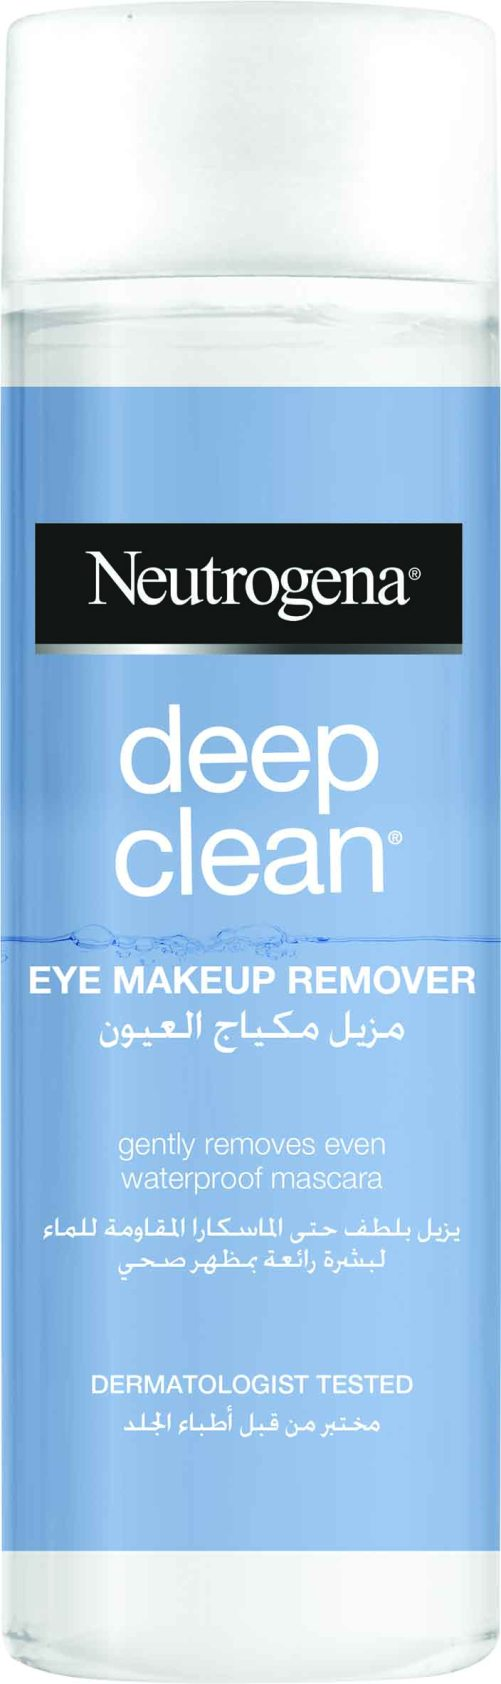 NTG_DeepClean_Deep Clean_Eye make-up remover.jpg